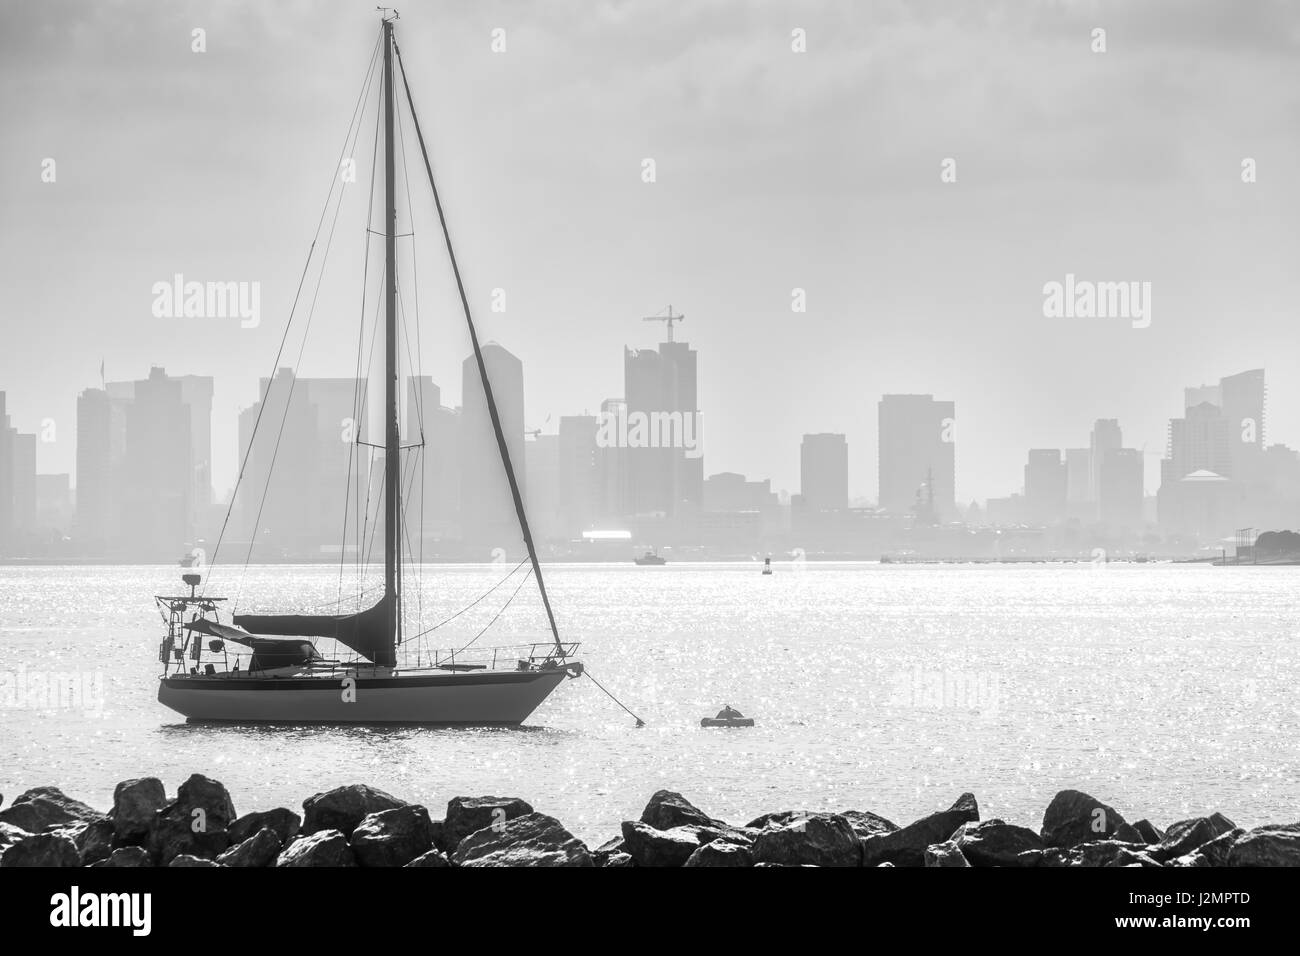 A sailed anchored of Shelter Island in San Diego, California. - Stock Image